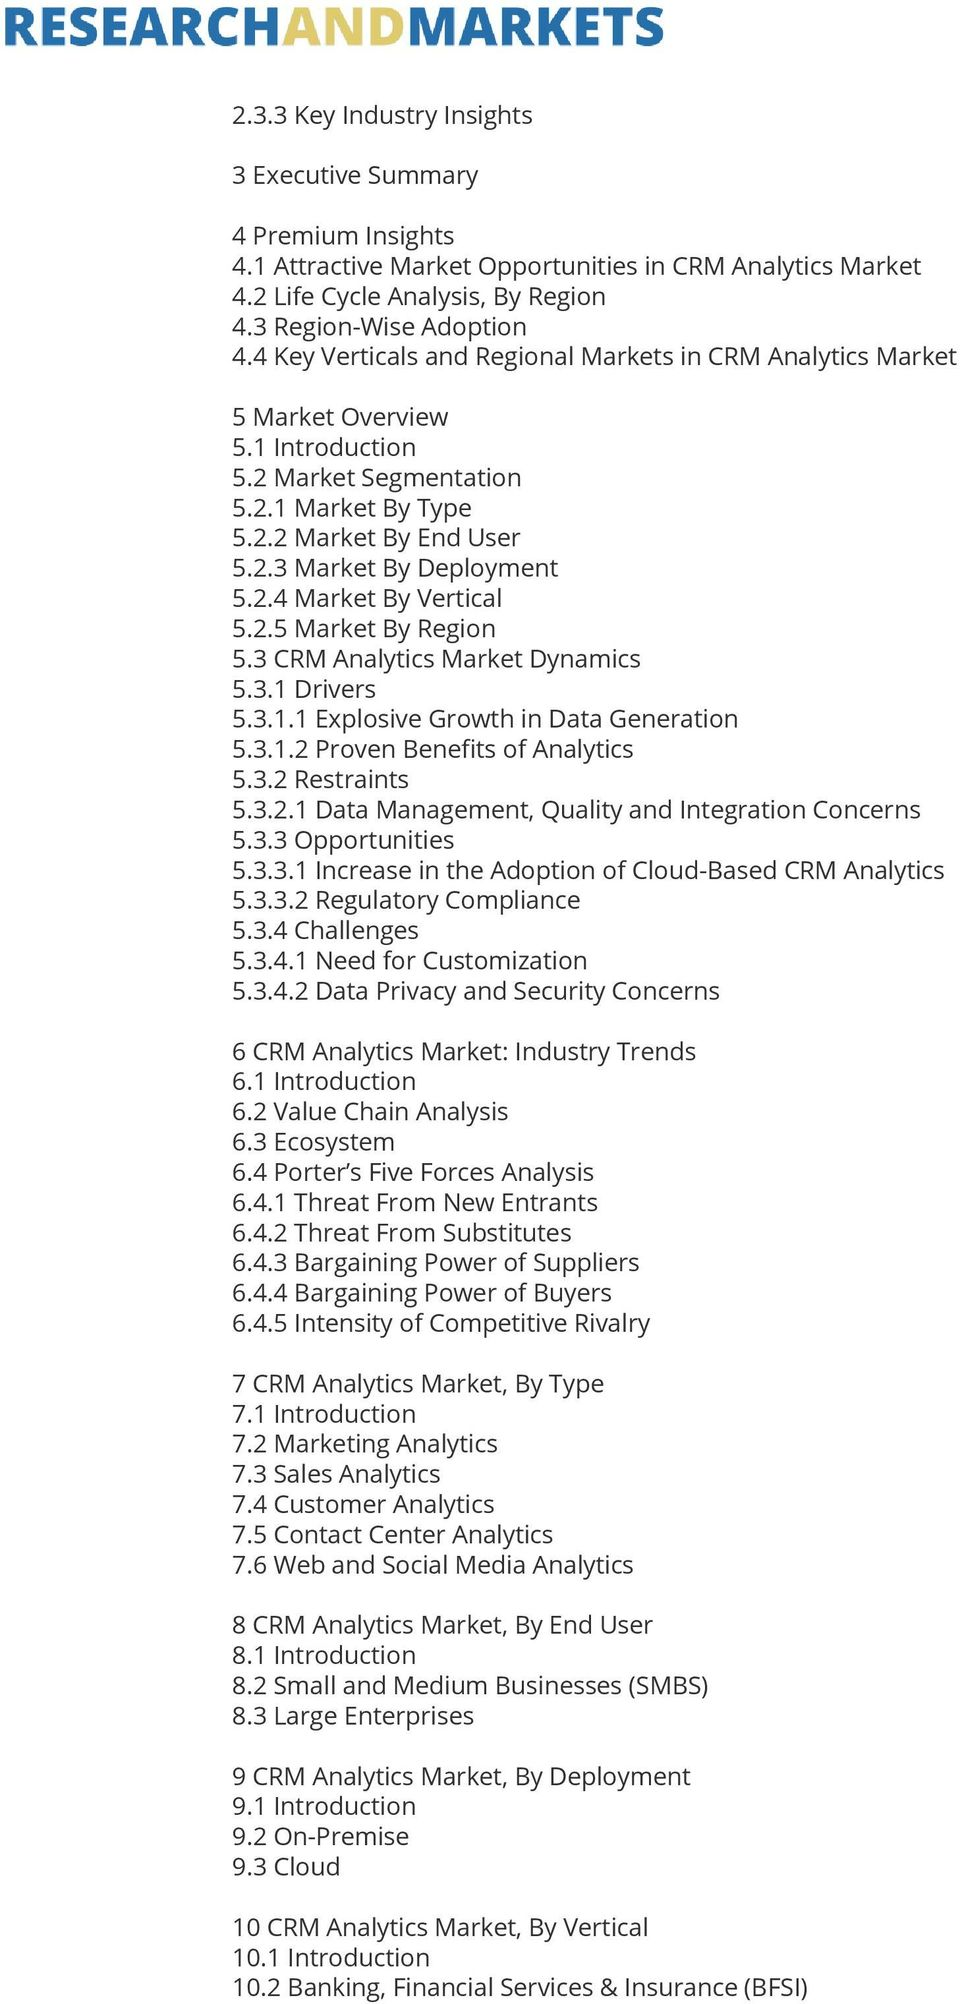 2.5 Market By Region 5.3 CRM Analytics Market Dynamics 5.3.1 Drivers 5.3.1.1 Explosive Growth in Data Generation 5.3.1.2 Proven Benefits of Analytics 5.3.2 Restraints 5.3.2.1 Data Management, Quality and Integration Concerns 5.